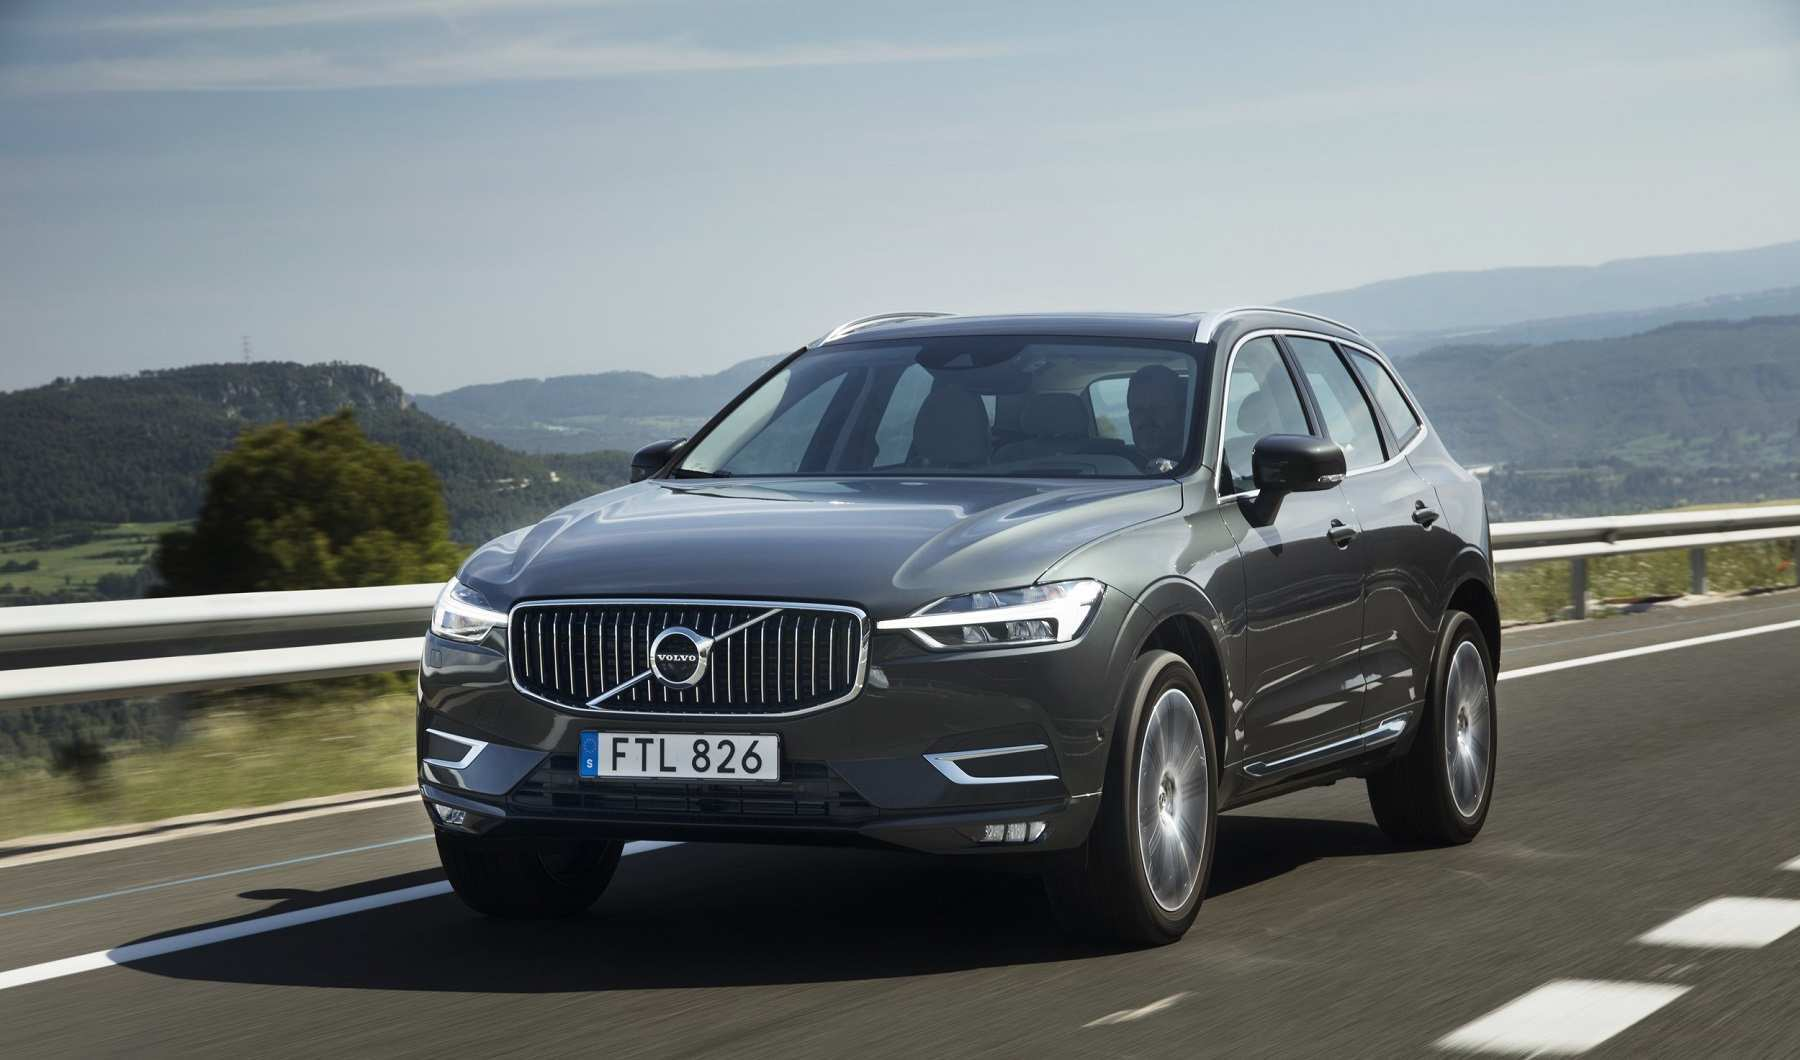 78 Great Volvo Xc60 2020 New Concept Model by Volvo Xc60 2020 New Concept